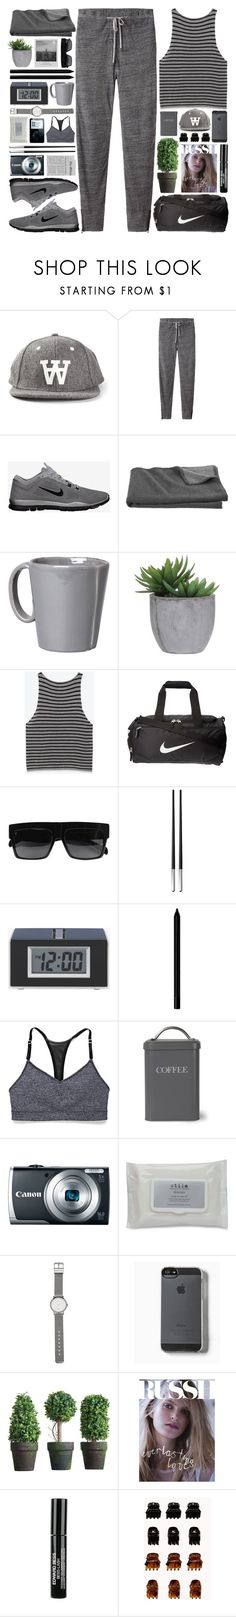 """Run (Tag- Please Read)"" by heartart ❤ liked on Polyvore featuring Wood Wood, 3.1 Phillip Lim, NIKE, Crate and Barrel, Vietri, Lux-Art Silks, Meggie, Yves Saint Laurent, CÉLINE and Christofle"